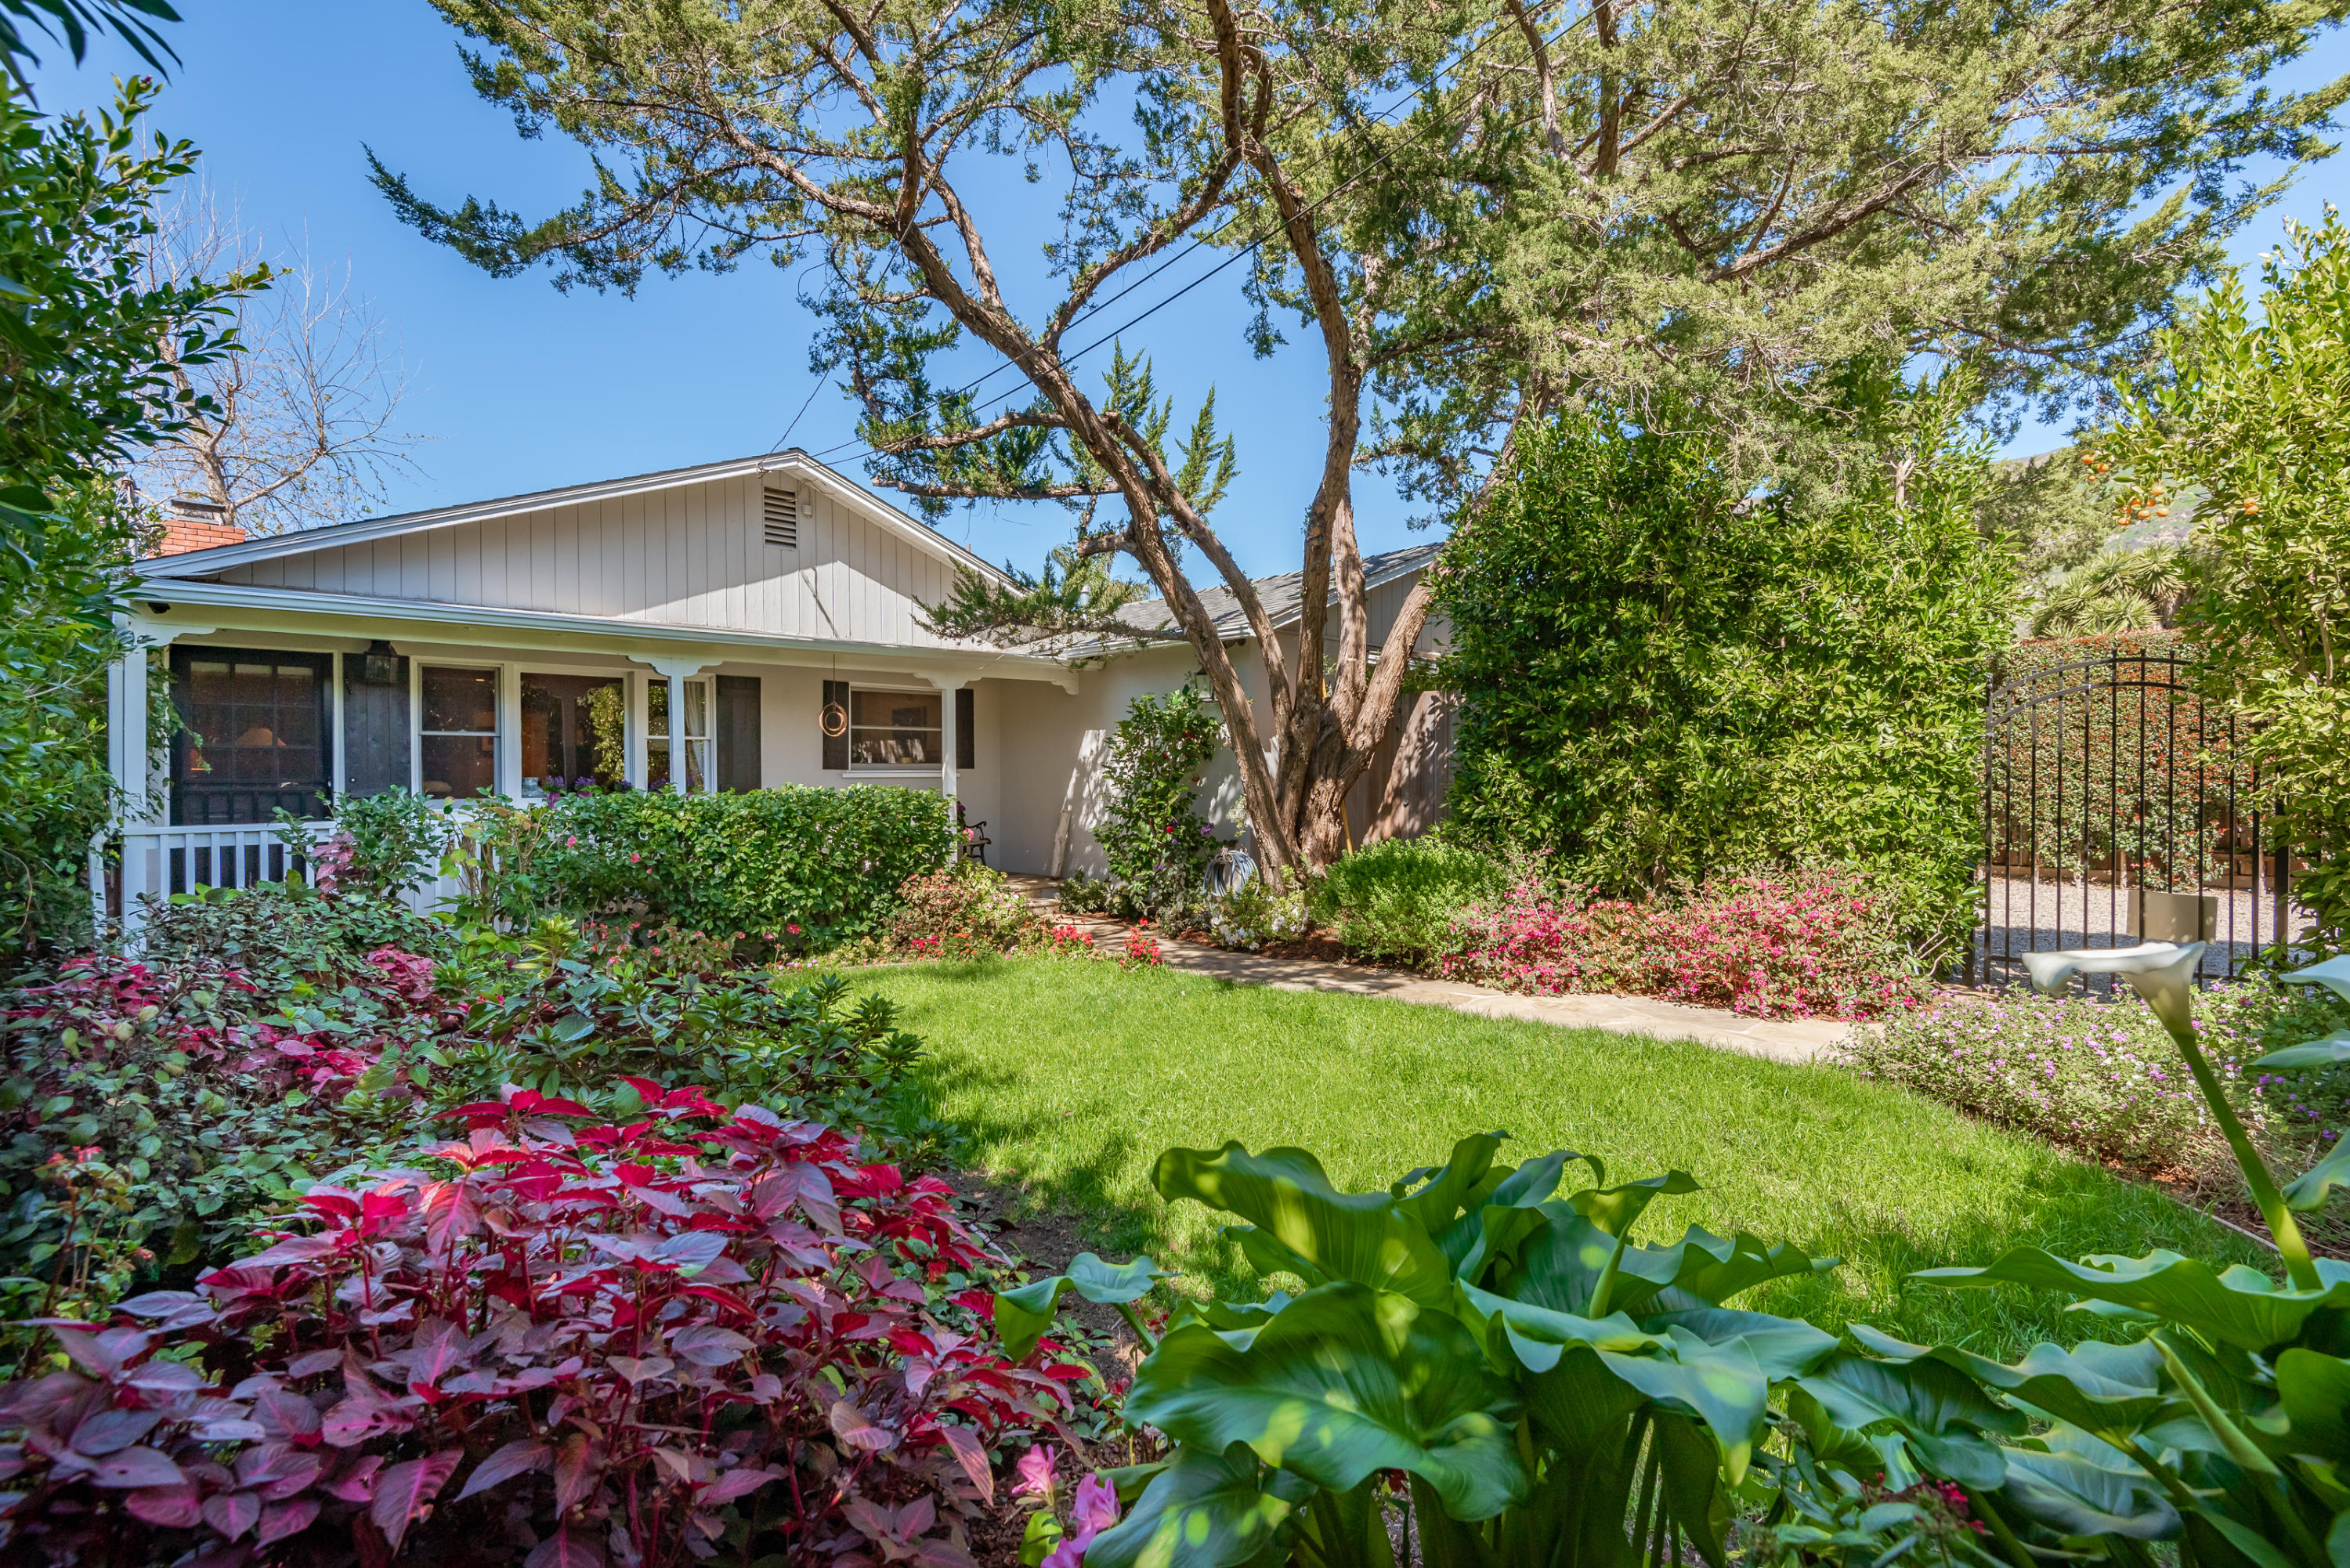 631 Orchard Ave - Montecito, California